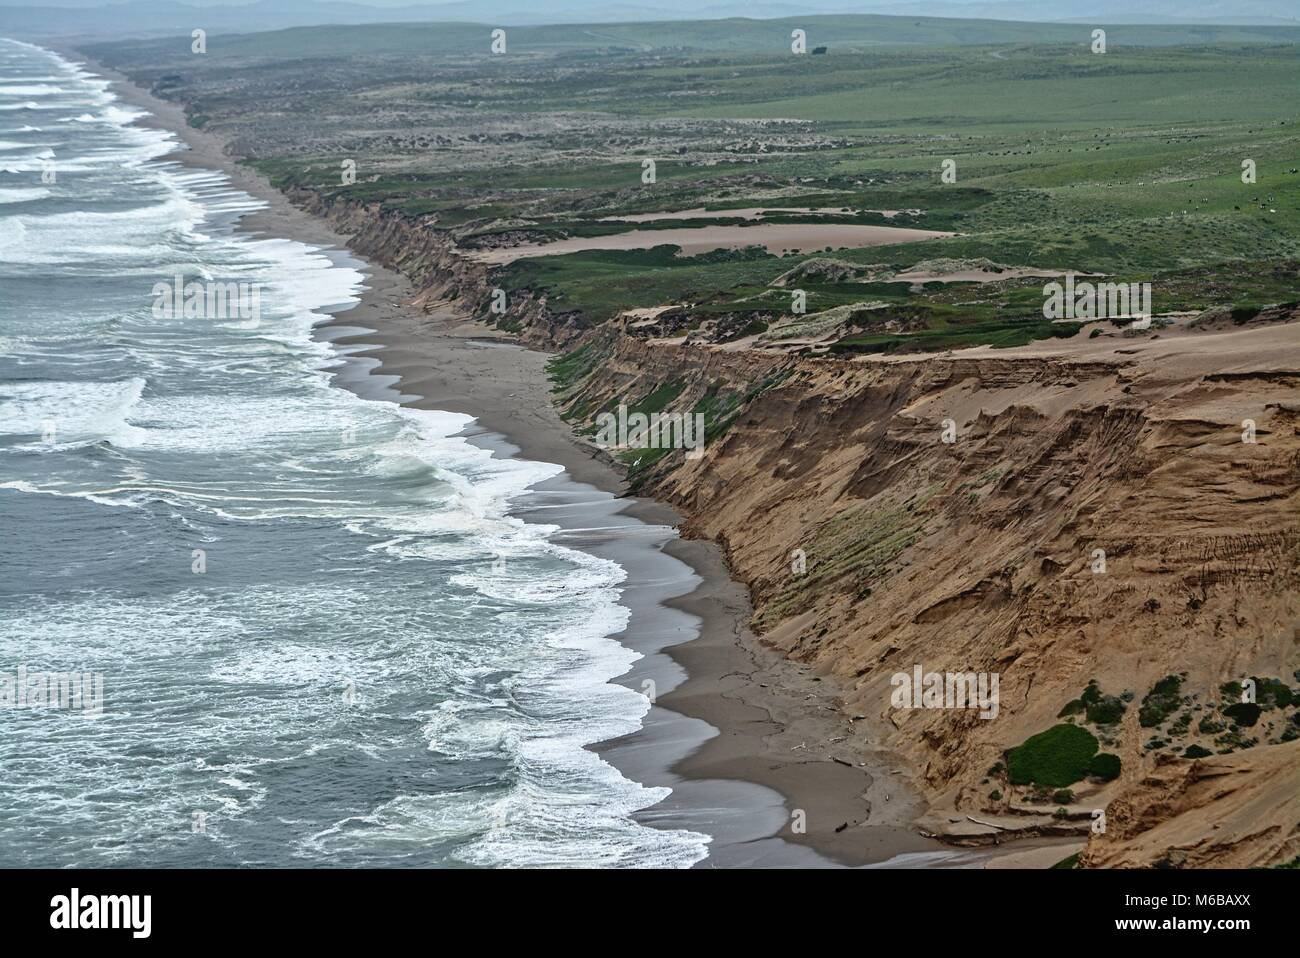 Point Reyes national seashore - rainy day and rough sea at Invernesse seahore - long sandy california coast - Stock Image